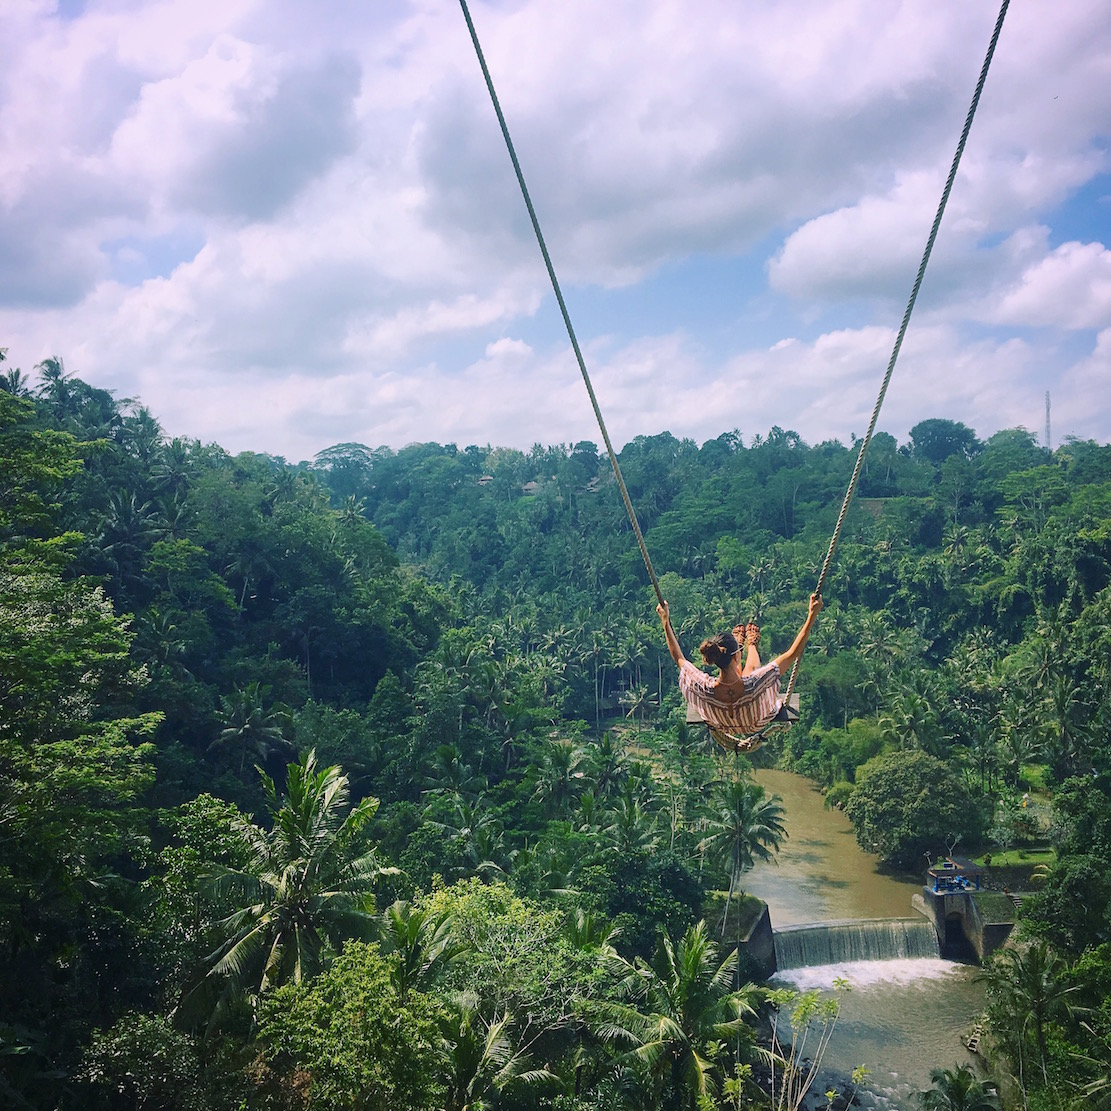 Zen Hideaway  Tucked away in the hills of Ubad and coated in dense jungle is a palm tree swing that allows you to soar over the falls below. The property also houses human-sized birds' nests with an unparalleled view.